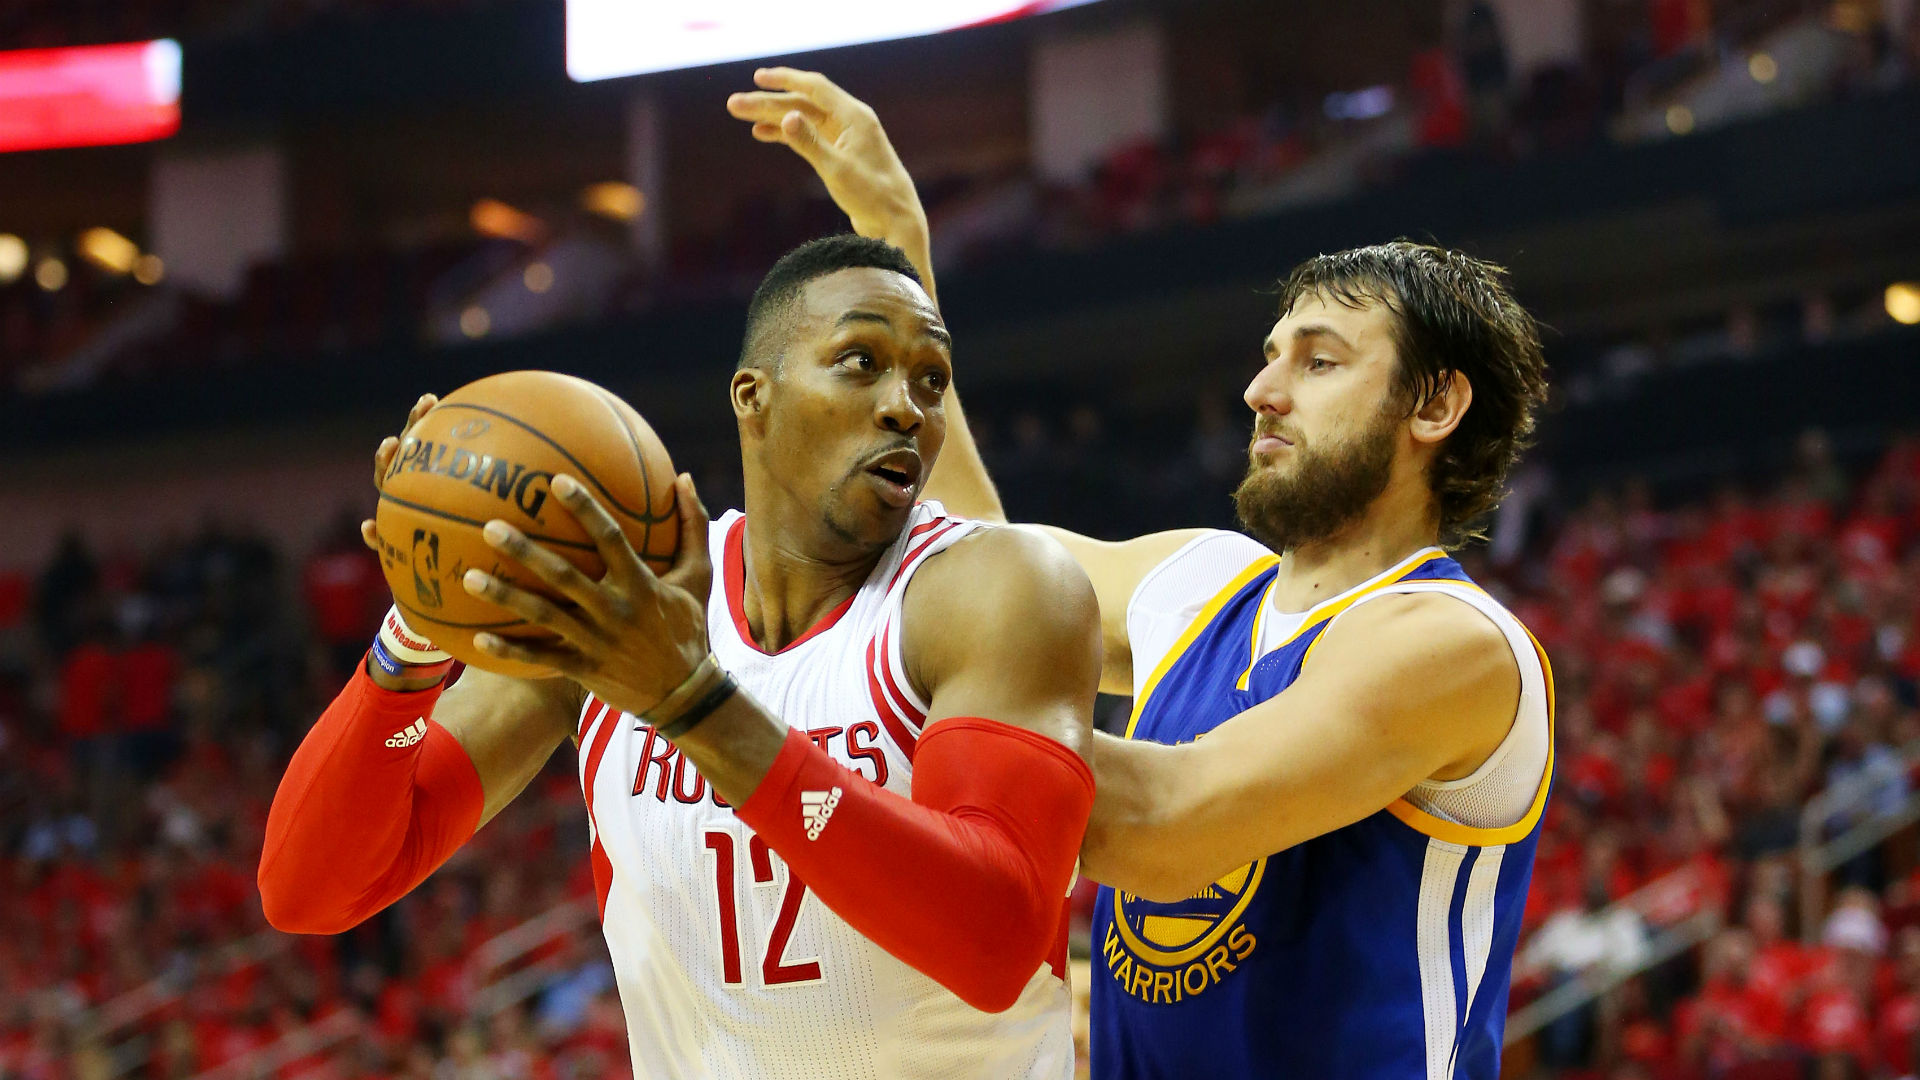 NBA says Dwight Howard's contact was 'unnecessary' but not 'excessive'